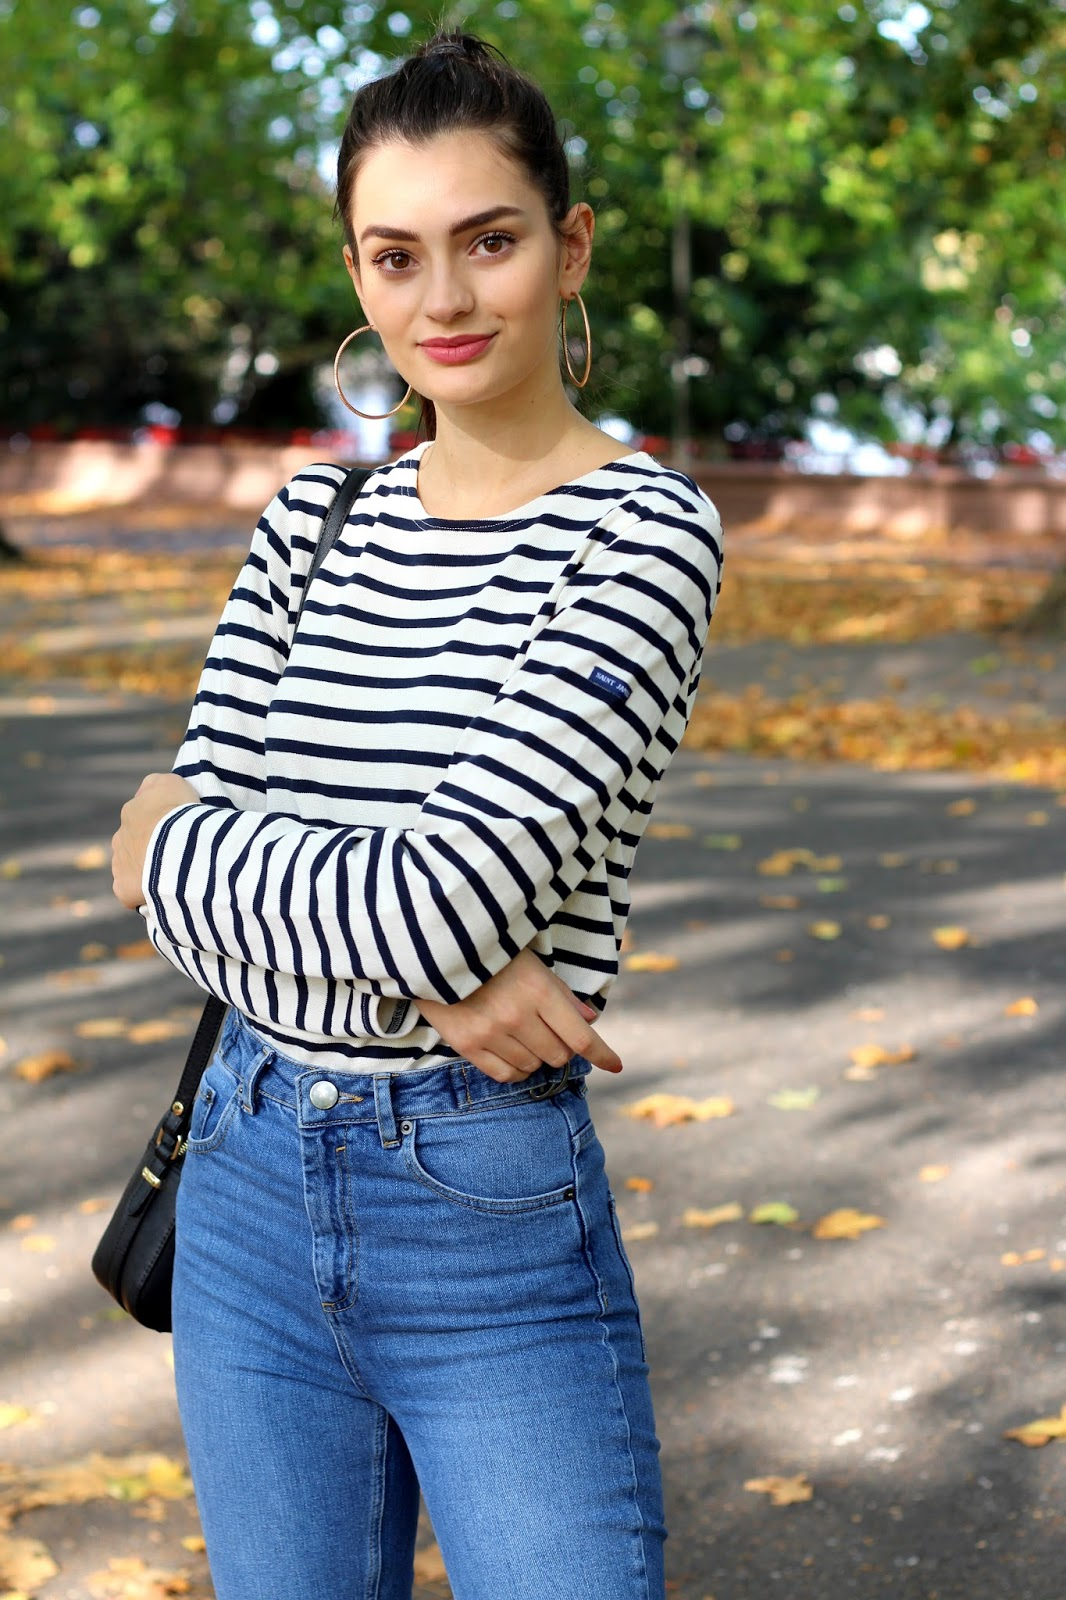 peexo london blogger autumn style